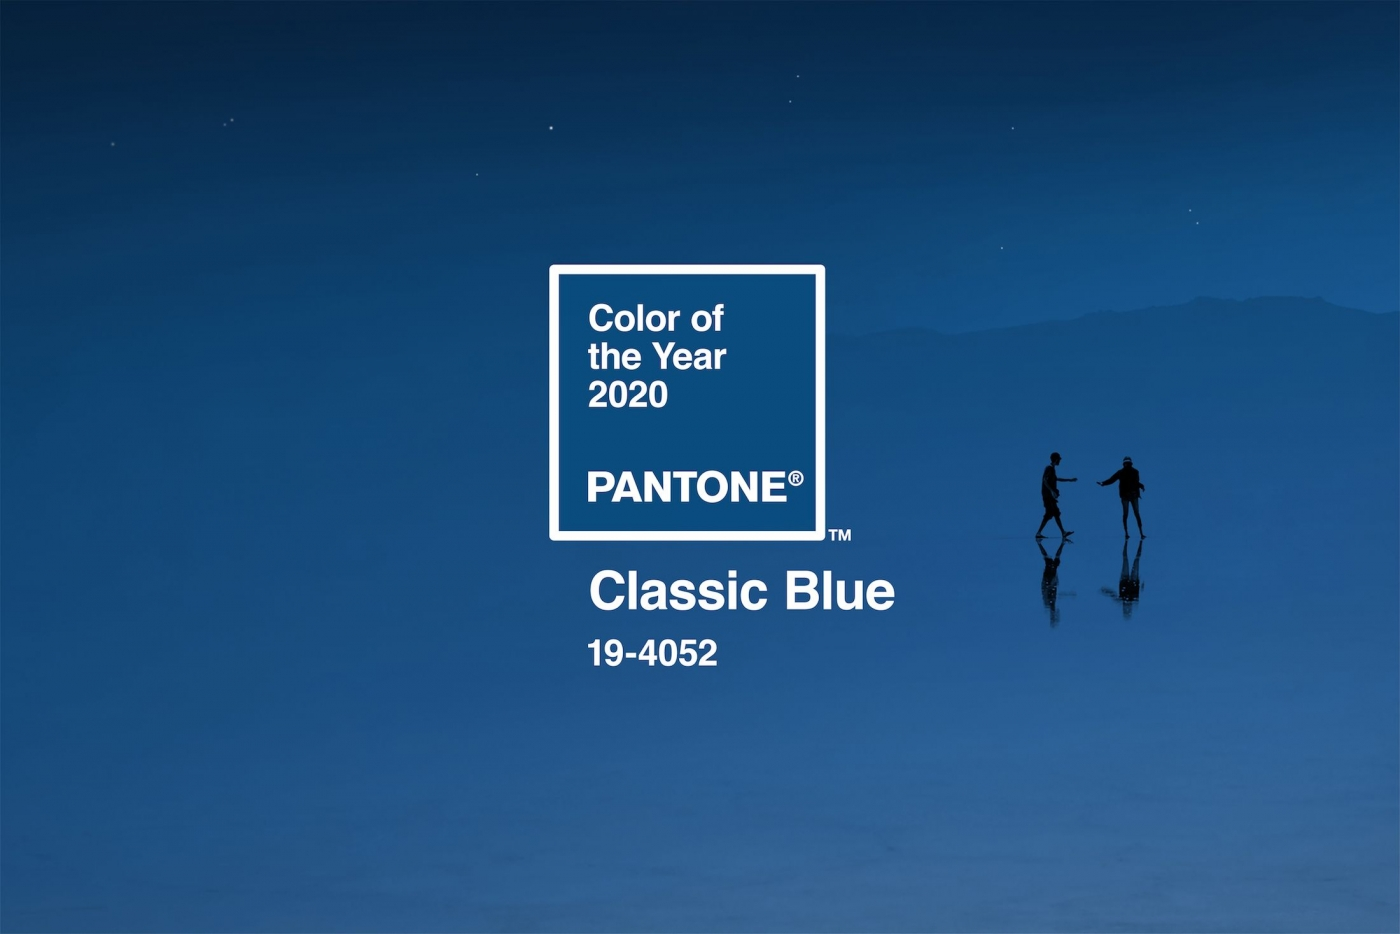 pantone color of the year Pantone Color Of The Year 2020 – The Instilling Calm Classic Blue Pantone Color Of The Year 2020 The Instilling Calm Classic Blue feature 1 1400x934